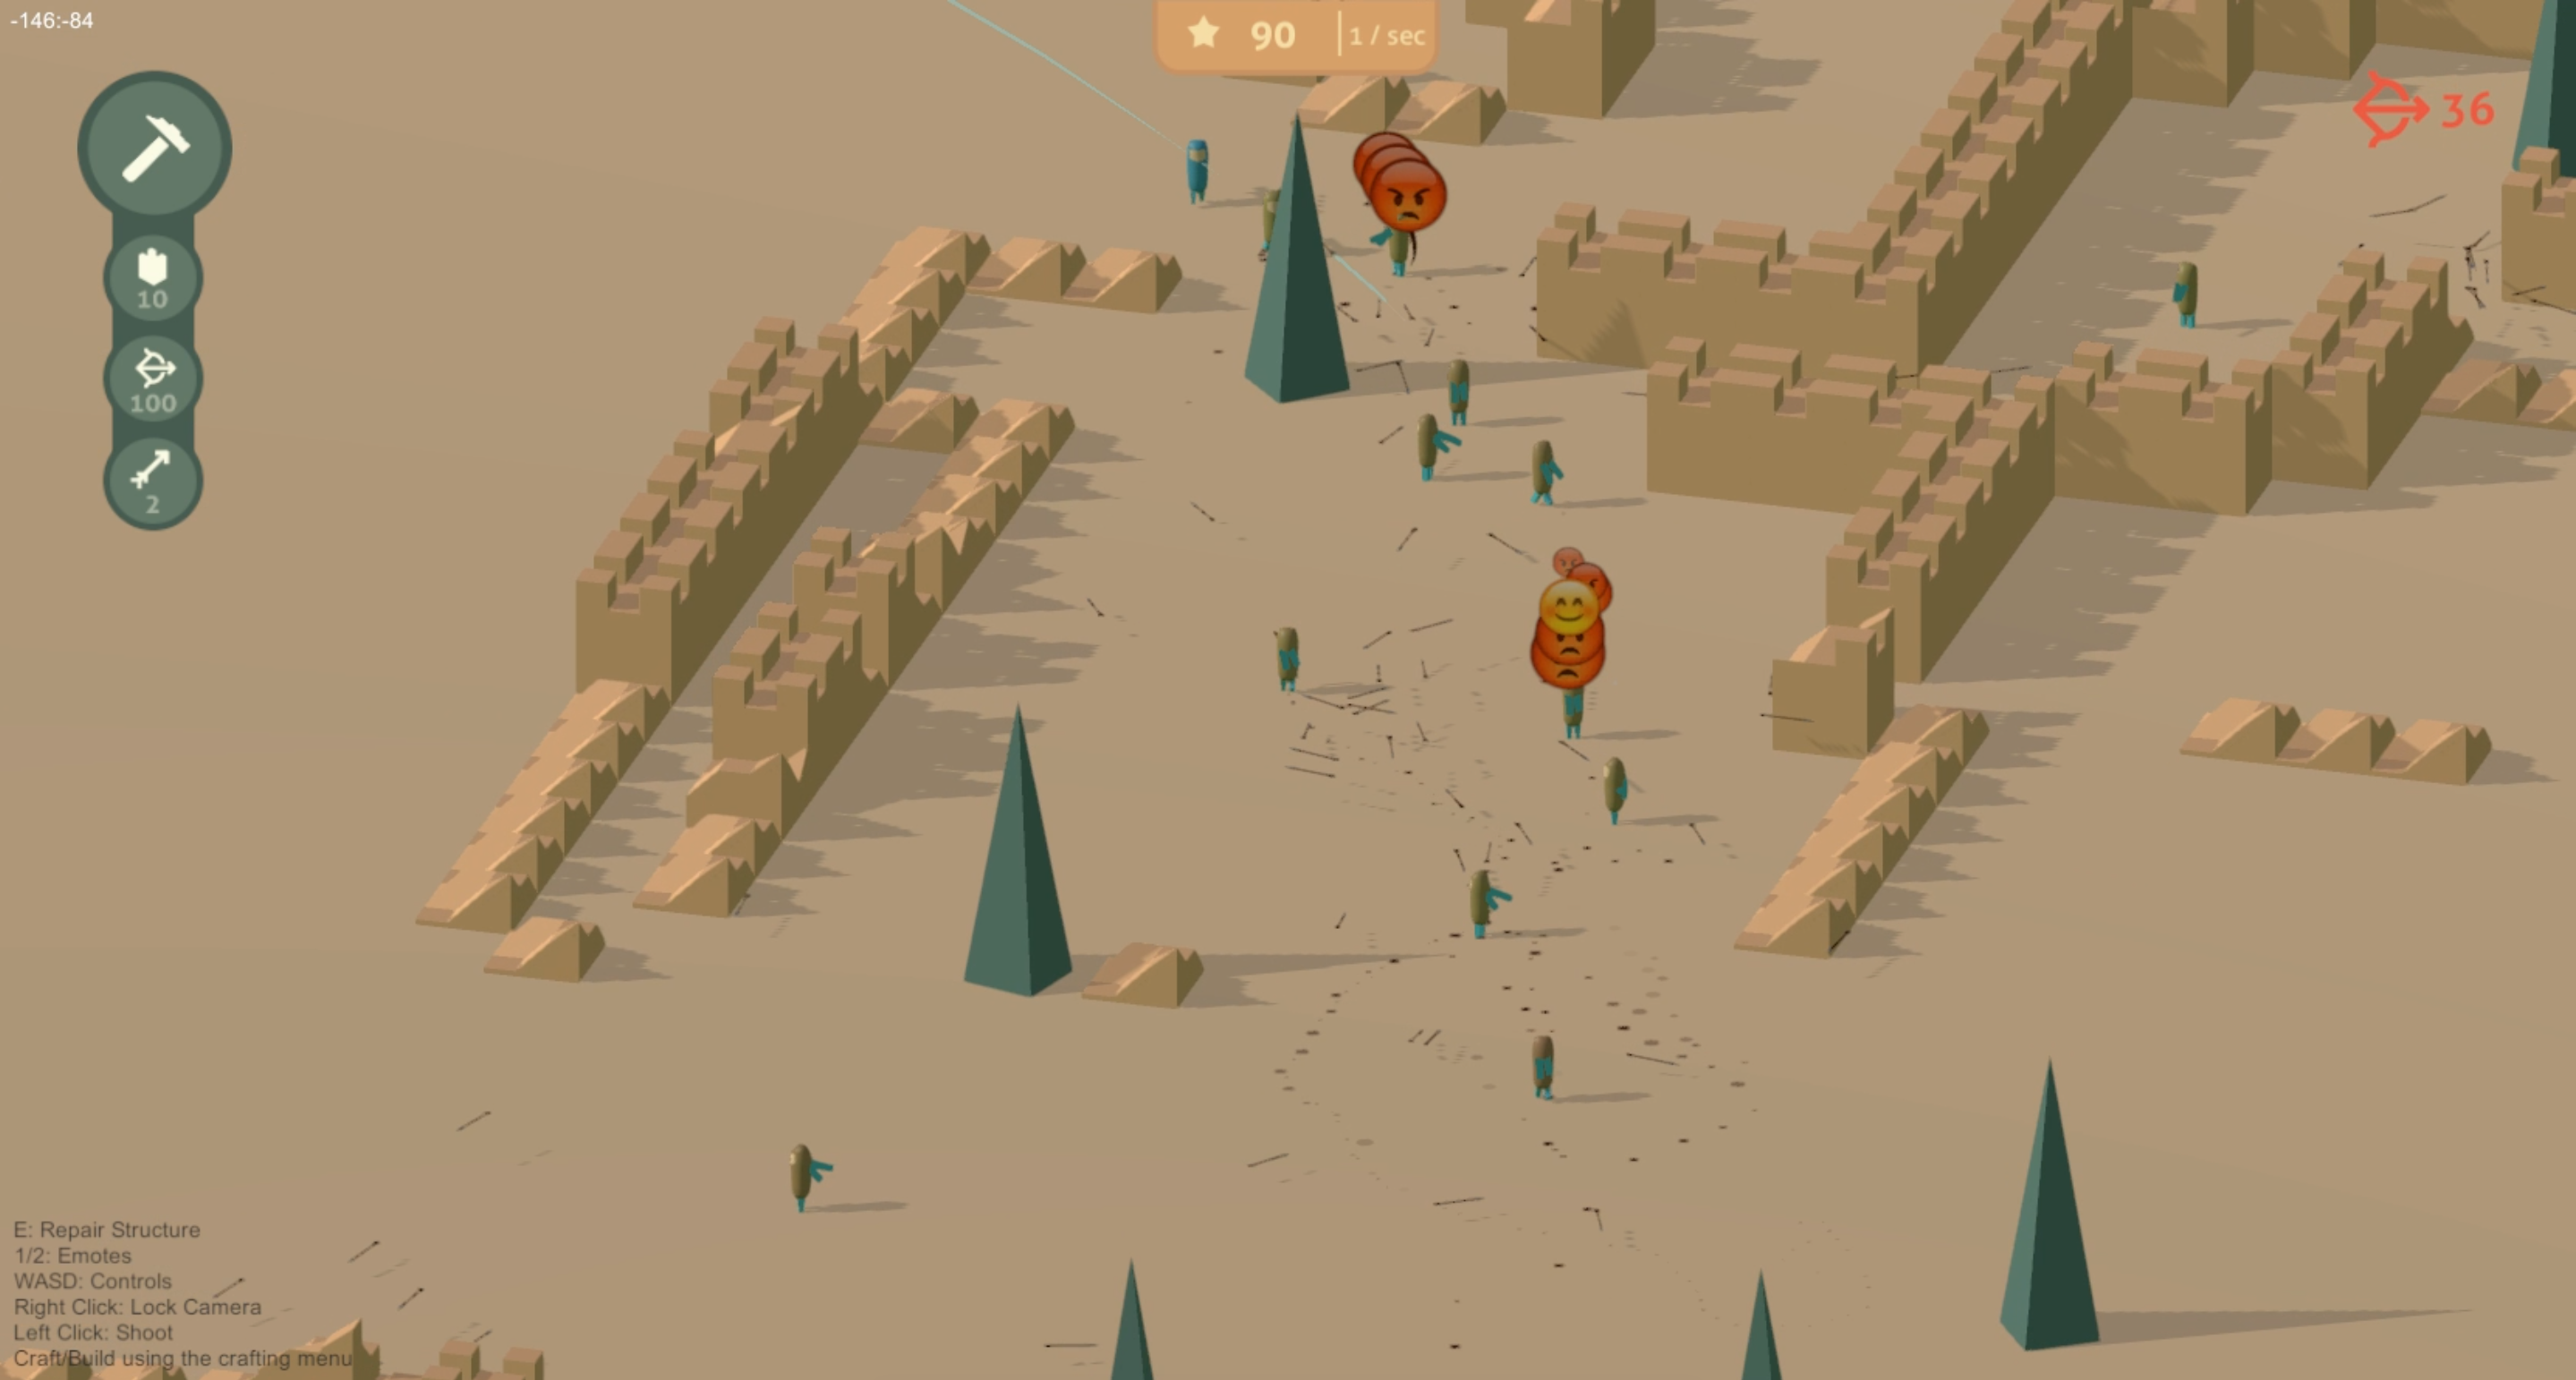 SpatialOS games like Rainbow can have instant drop-in, drop-out gameplay.